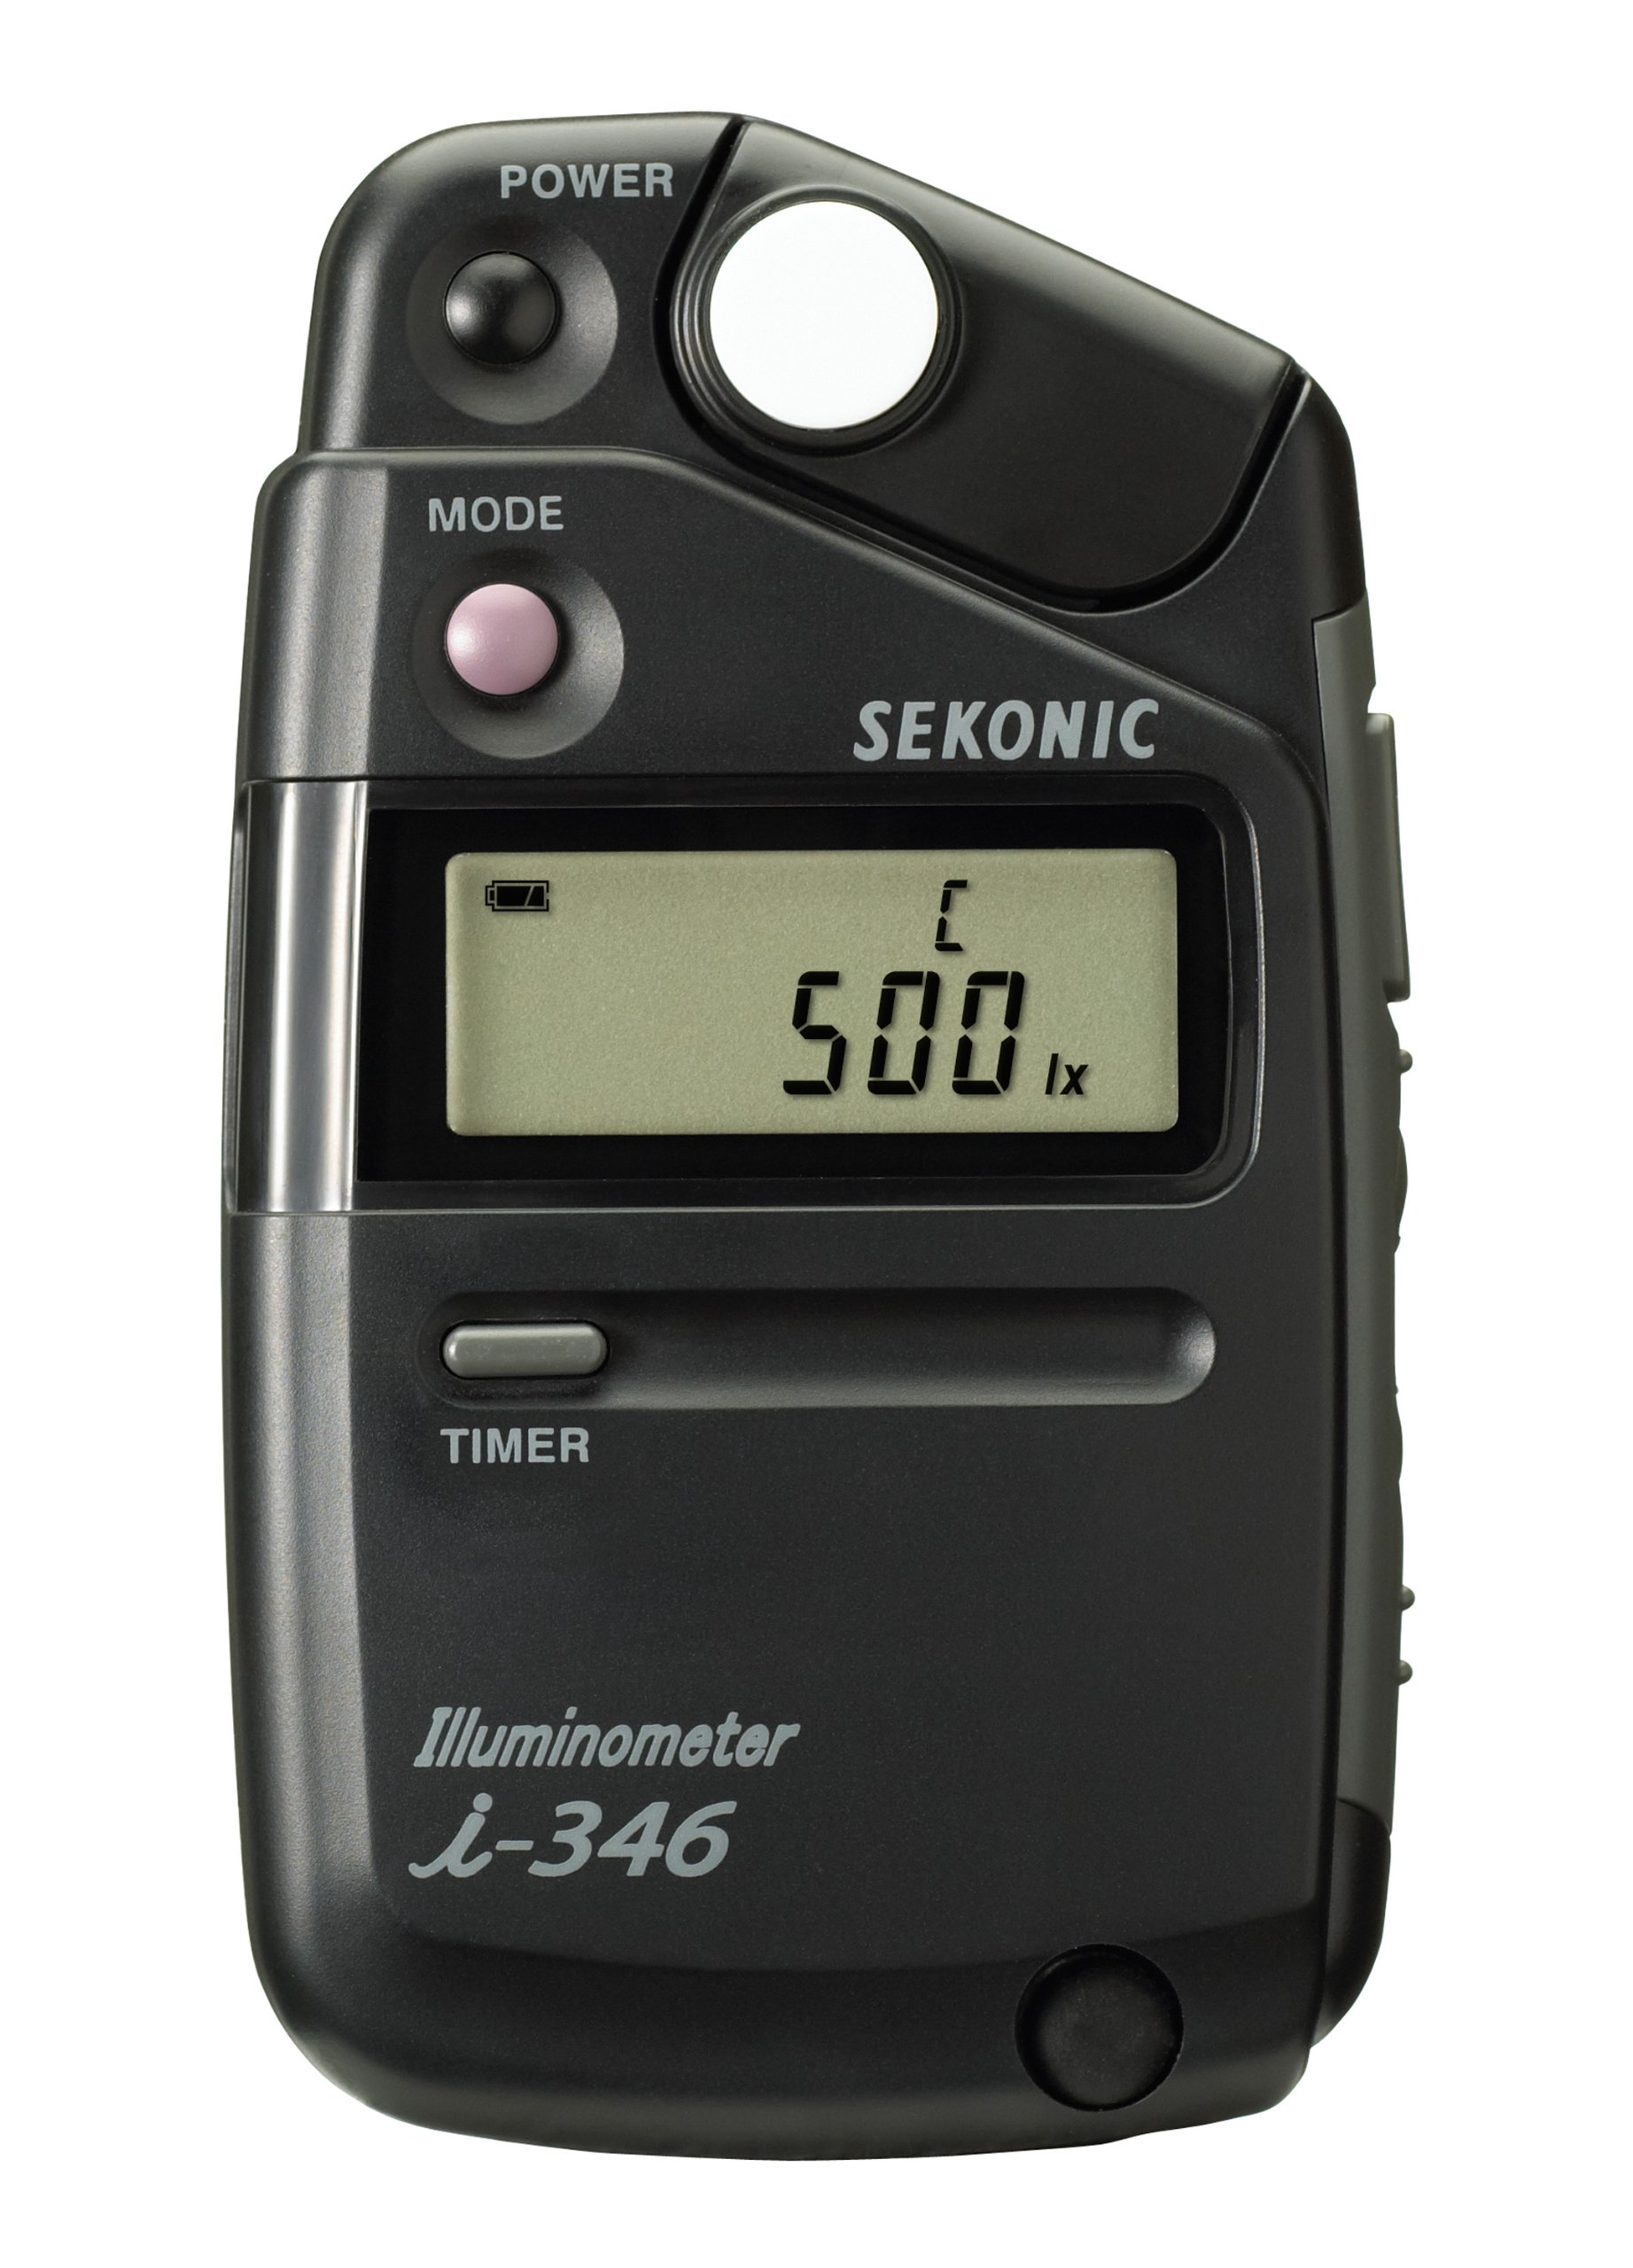 Sekonic 401-346 Illuminometer